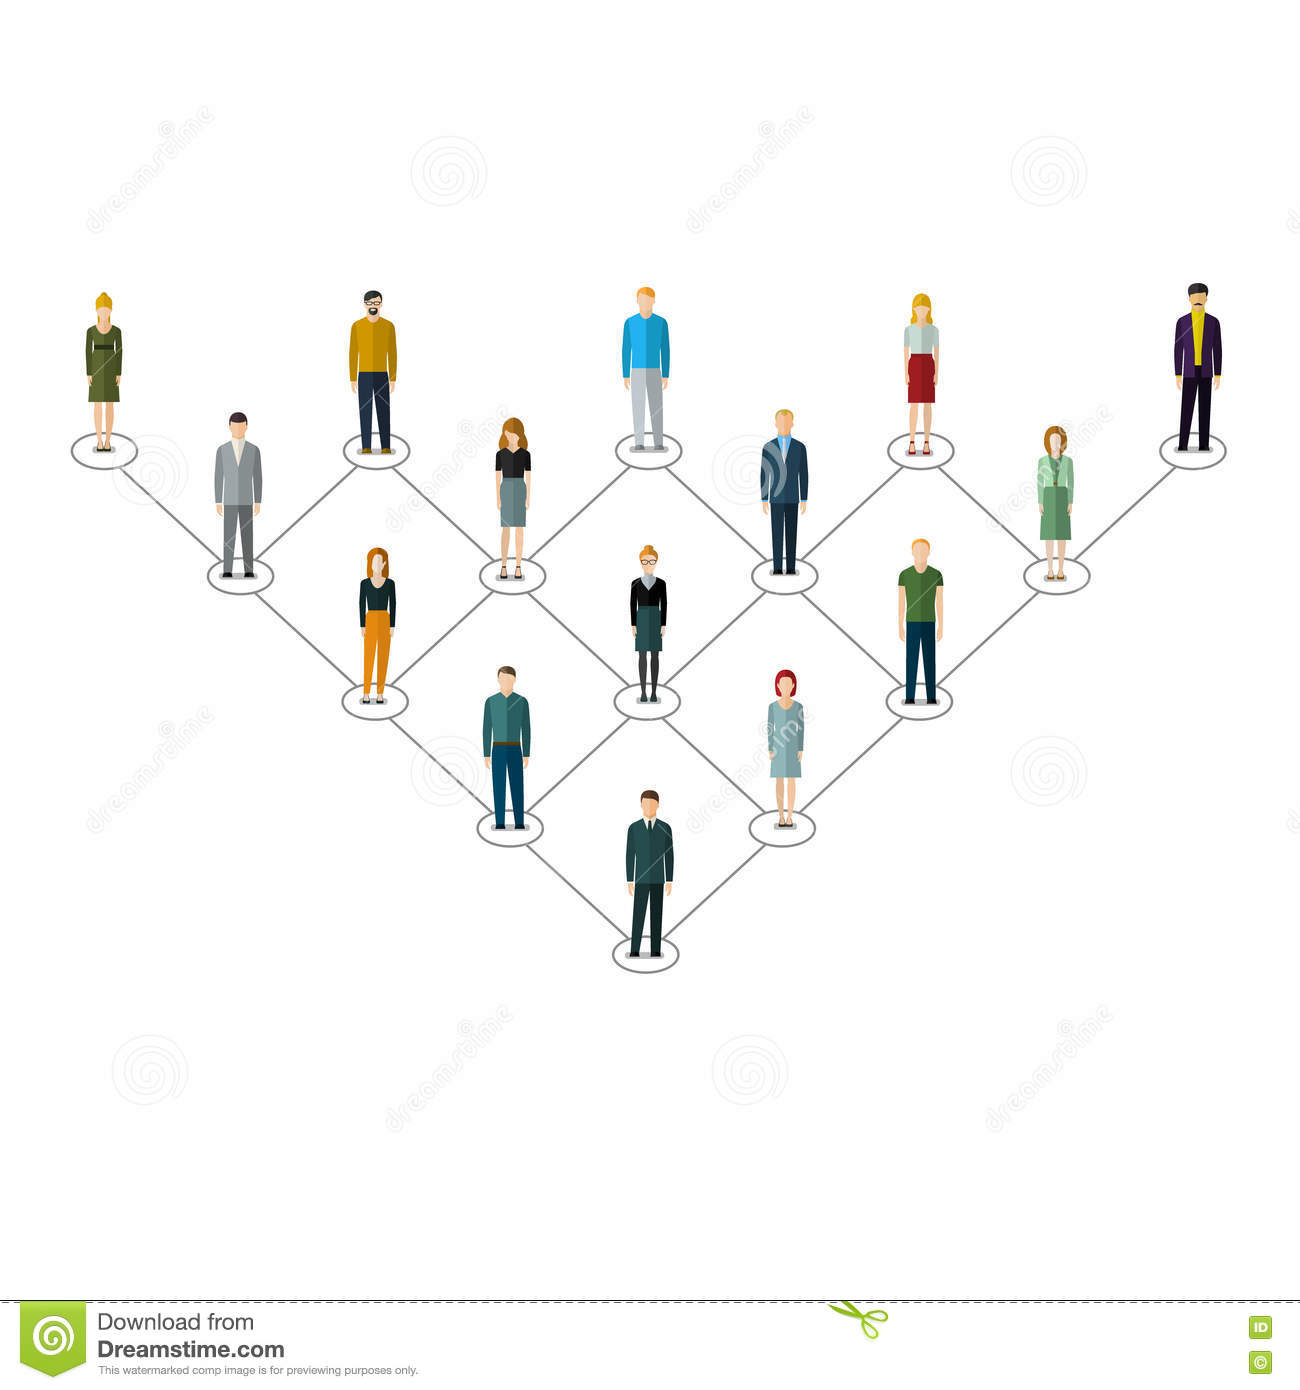 concept leadership Introduction to management and leadership concepts, principles, and practices inglittle that managers at all levels in an organization do falls outside the purview of the five management functions introduction to management and leadership concepts.